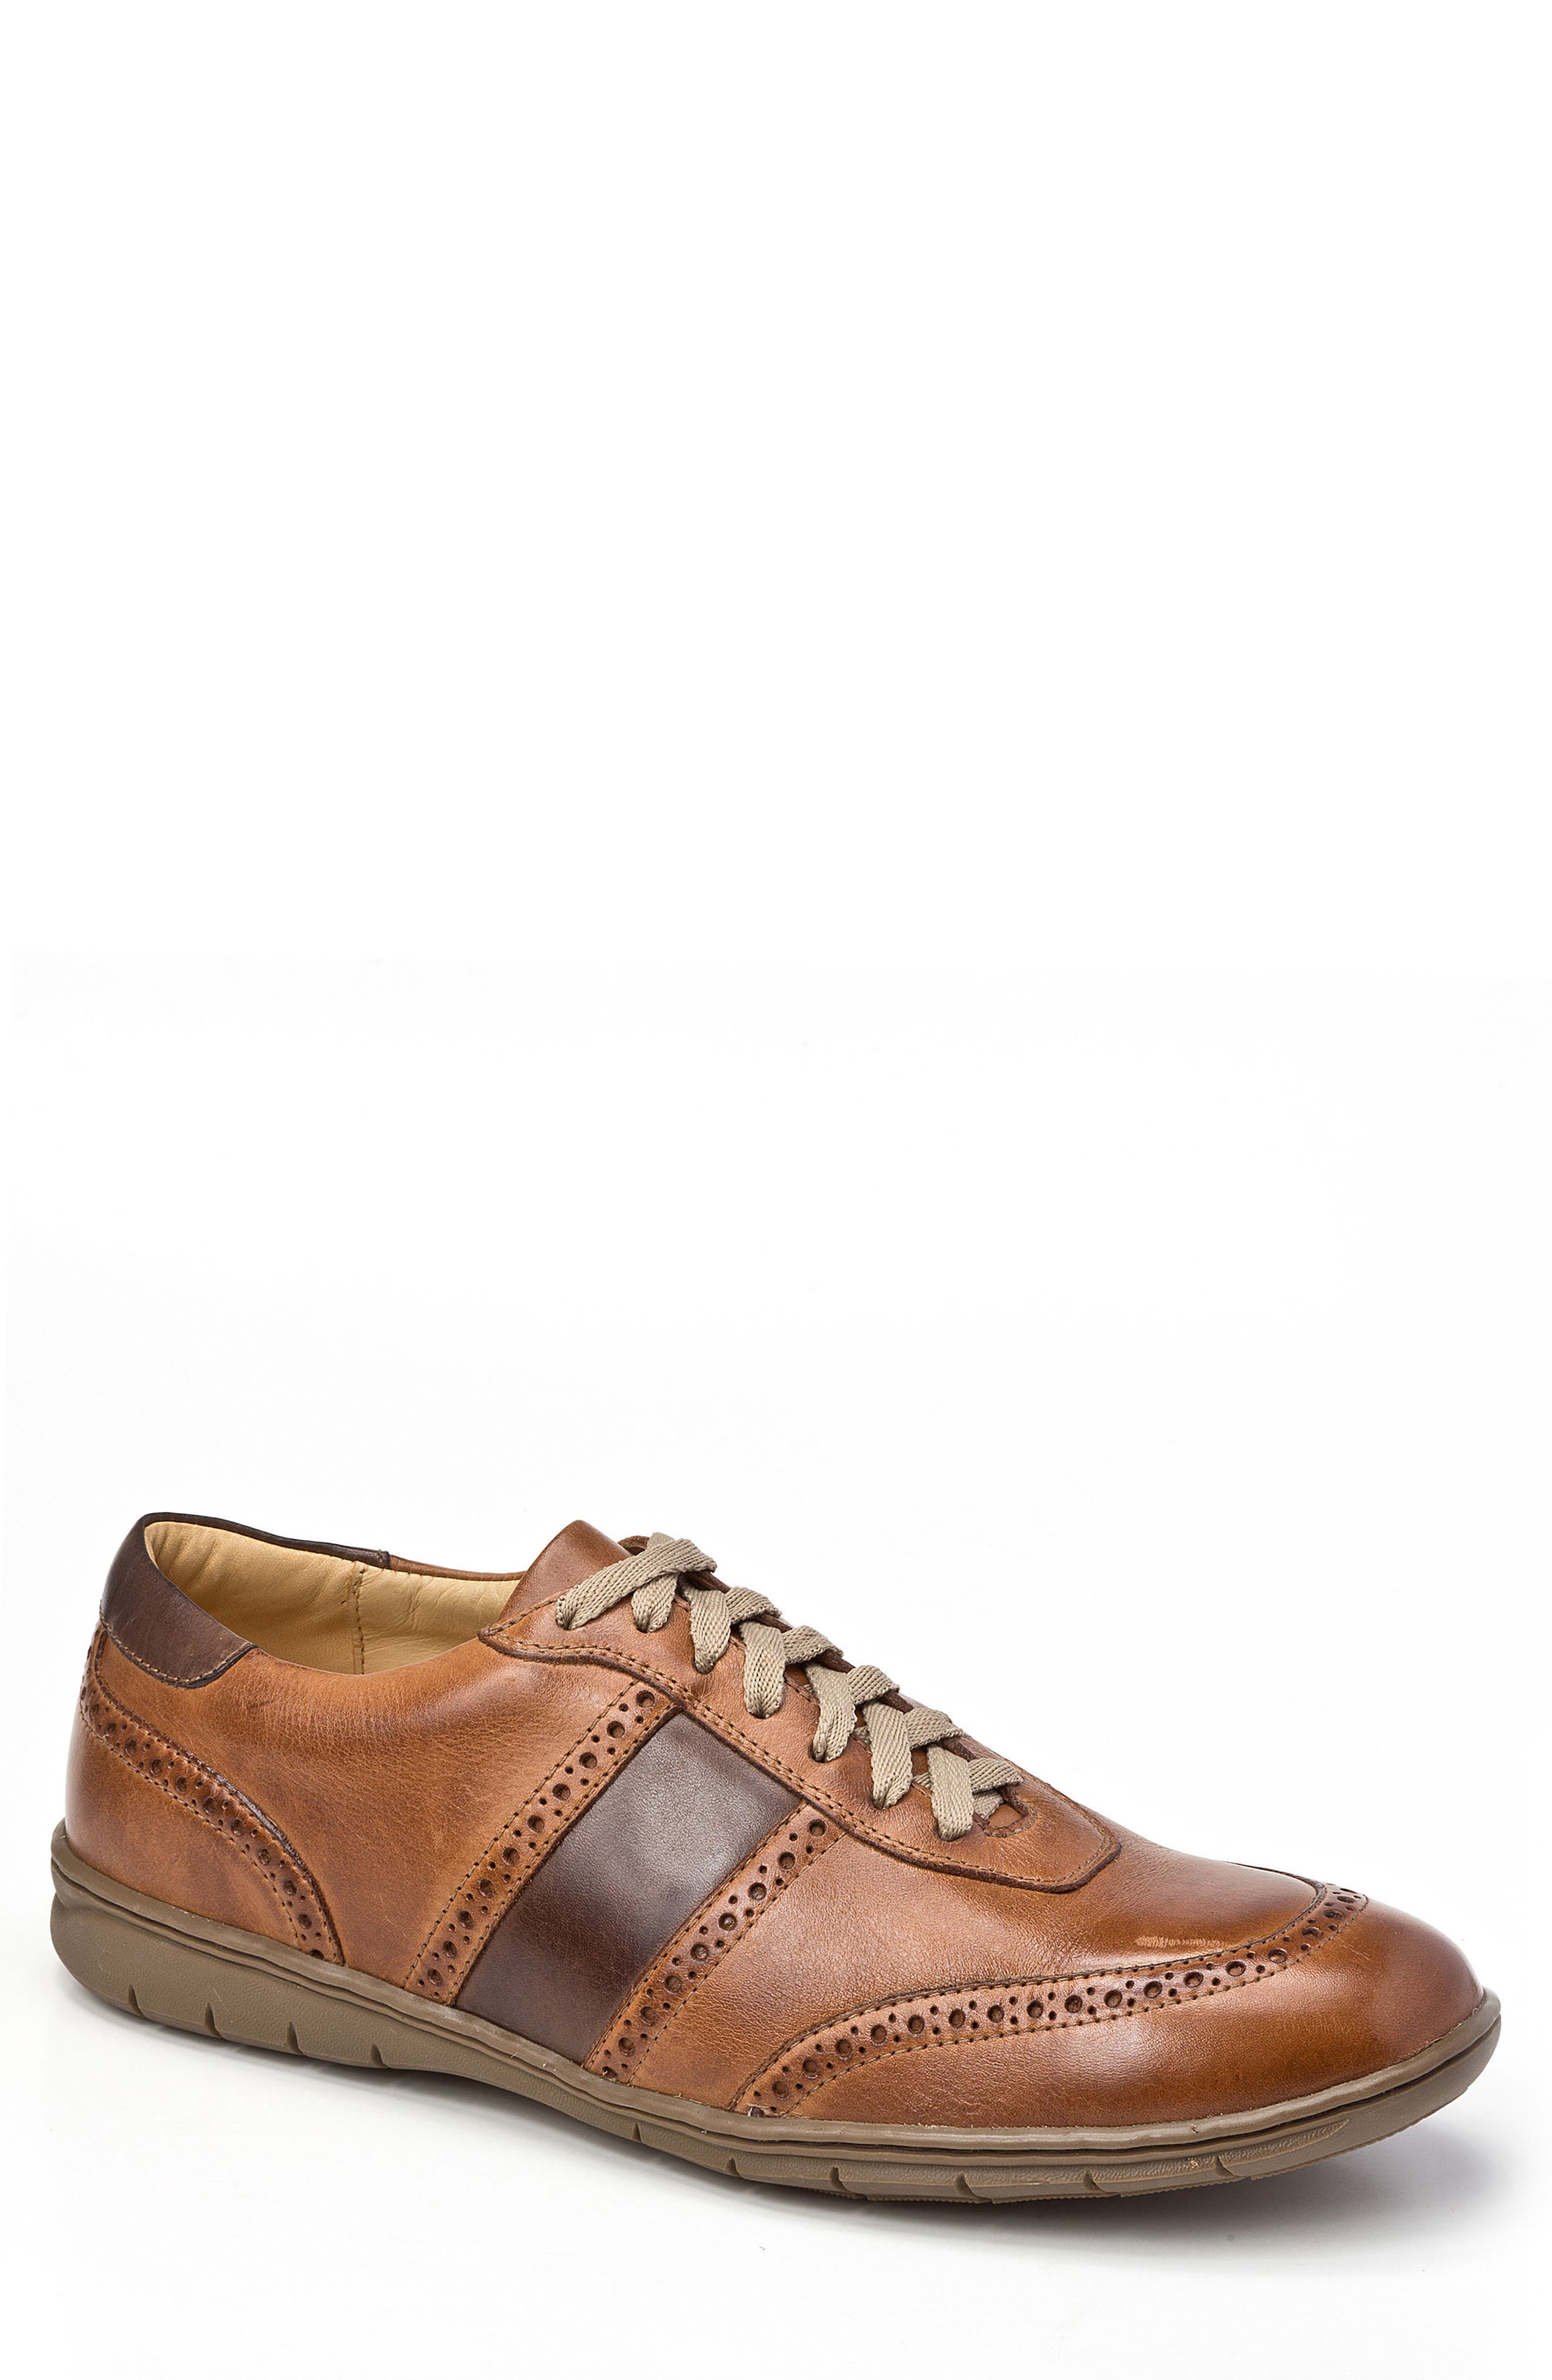 Norris Sneaker,                         Main,                         color, Tan Leather